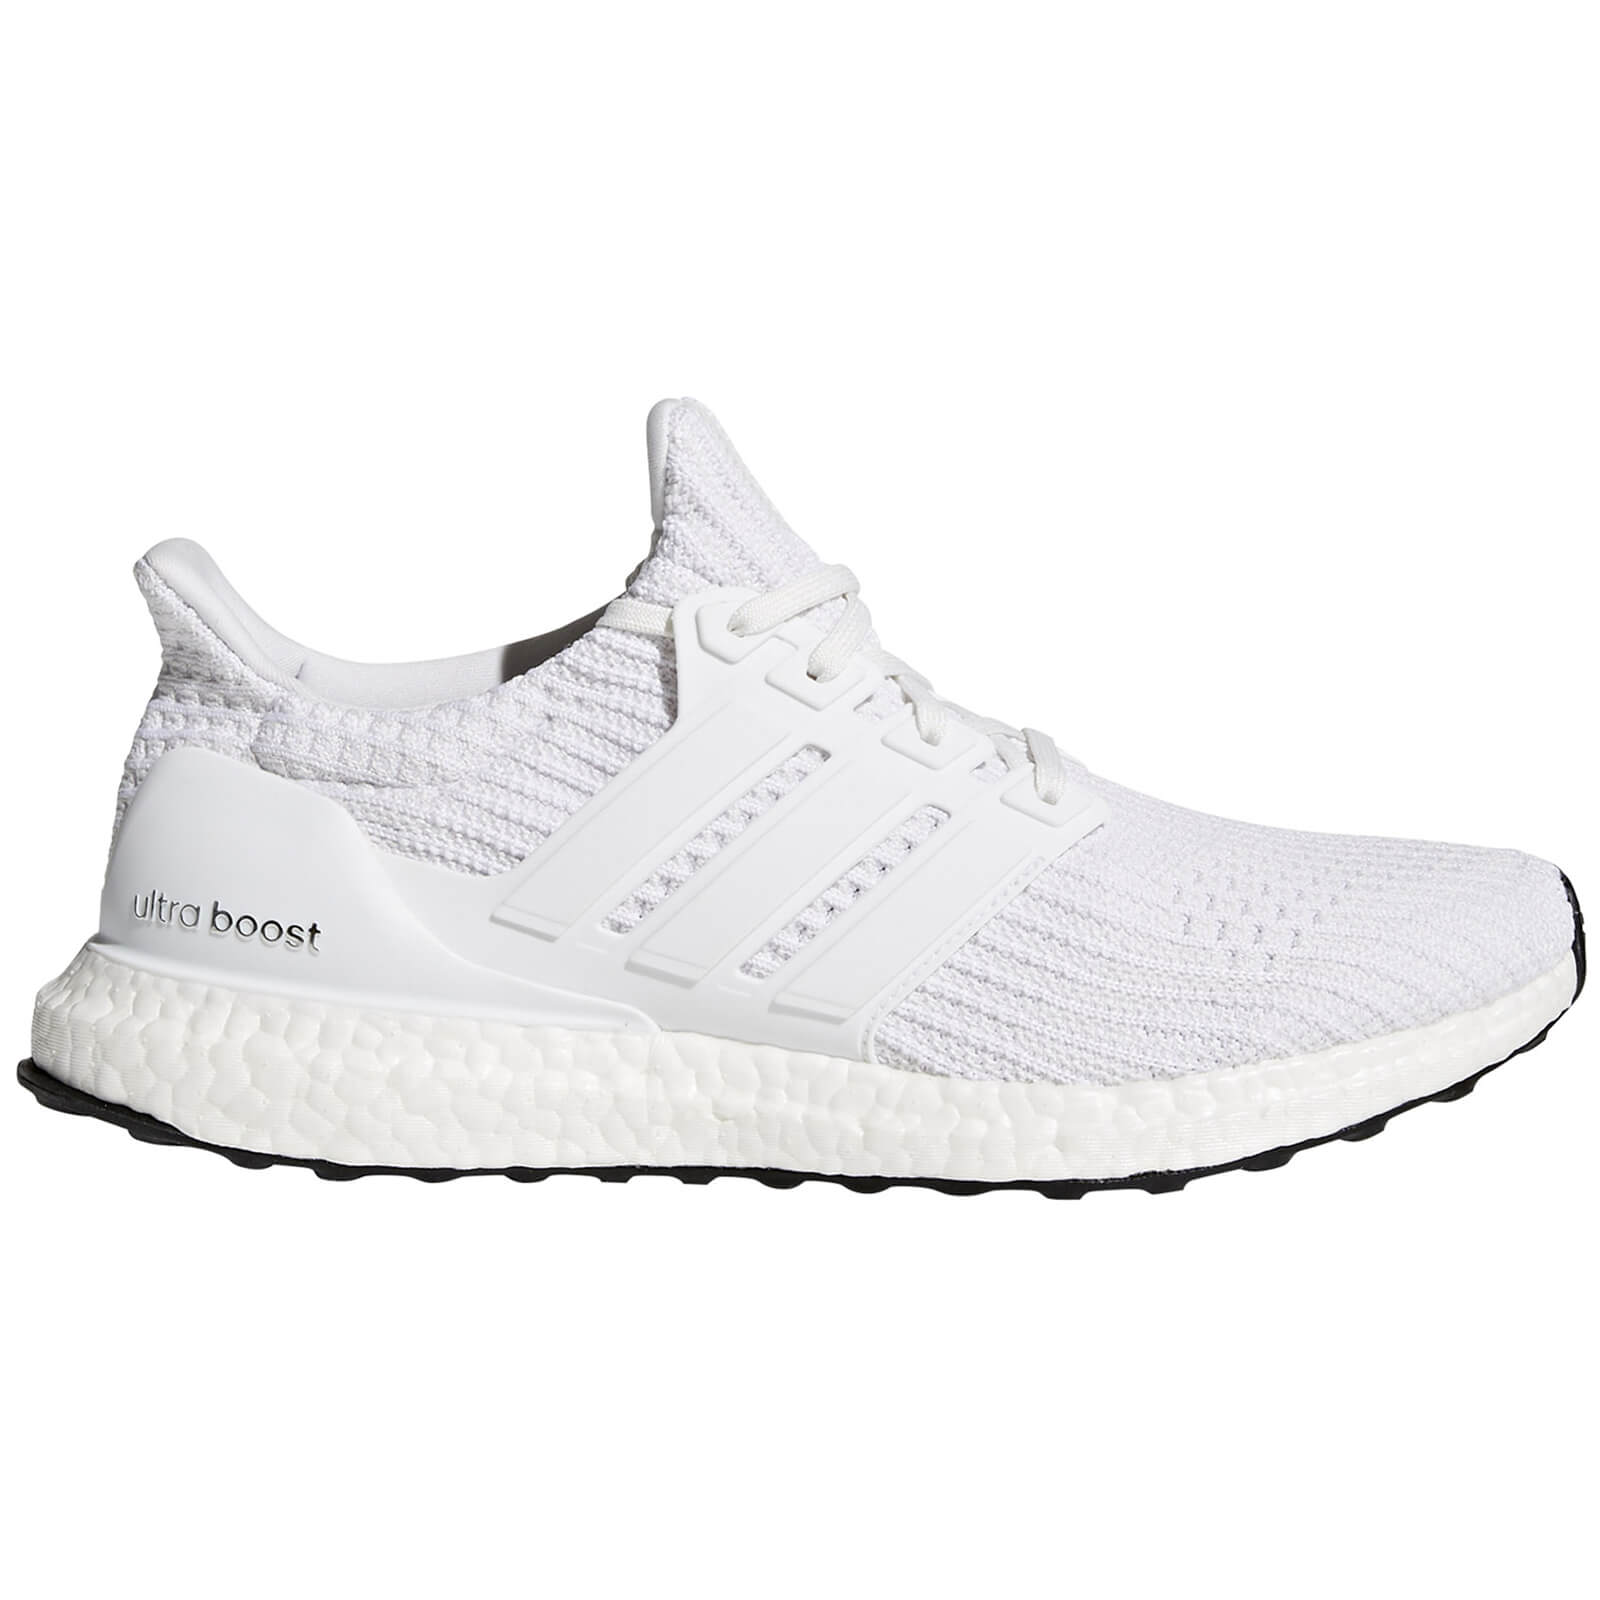 adidas Ultra Boost Running Shoes - White  2d5842bb7b7e4